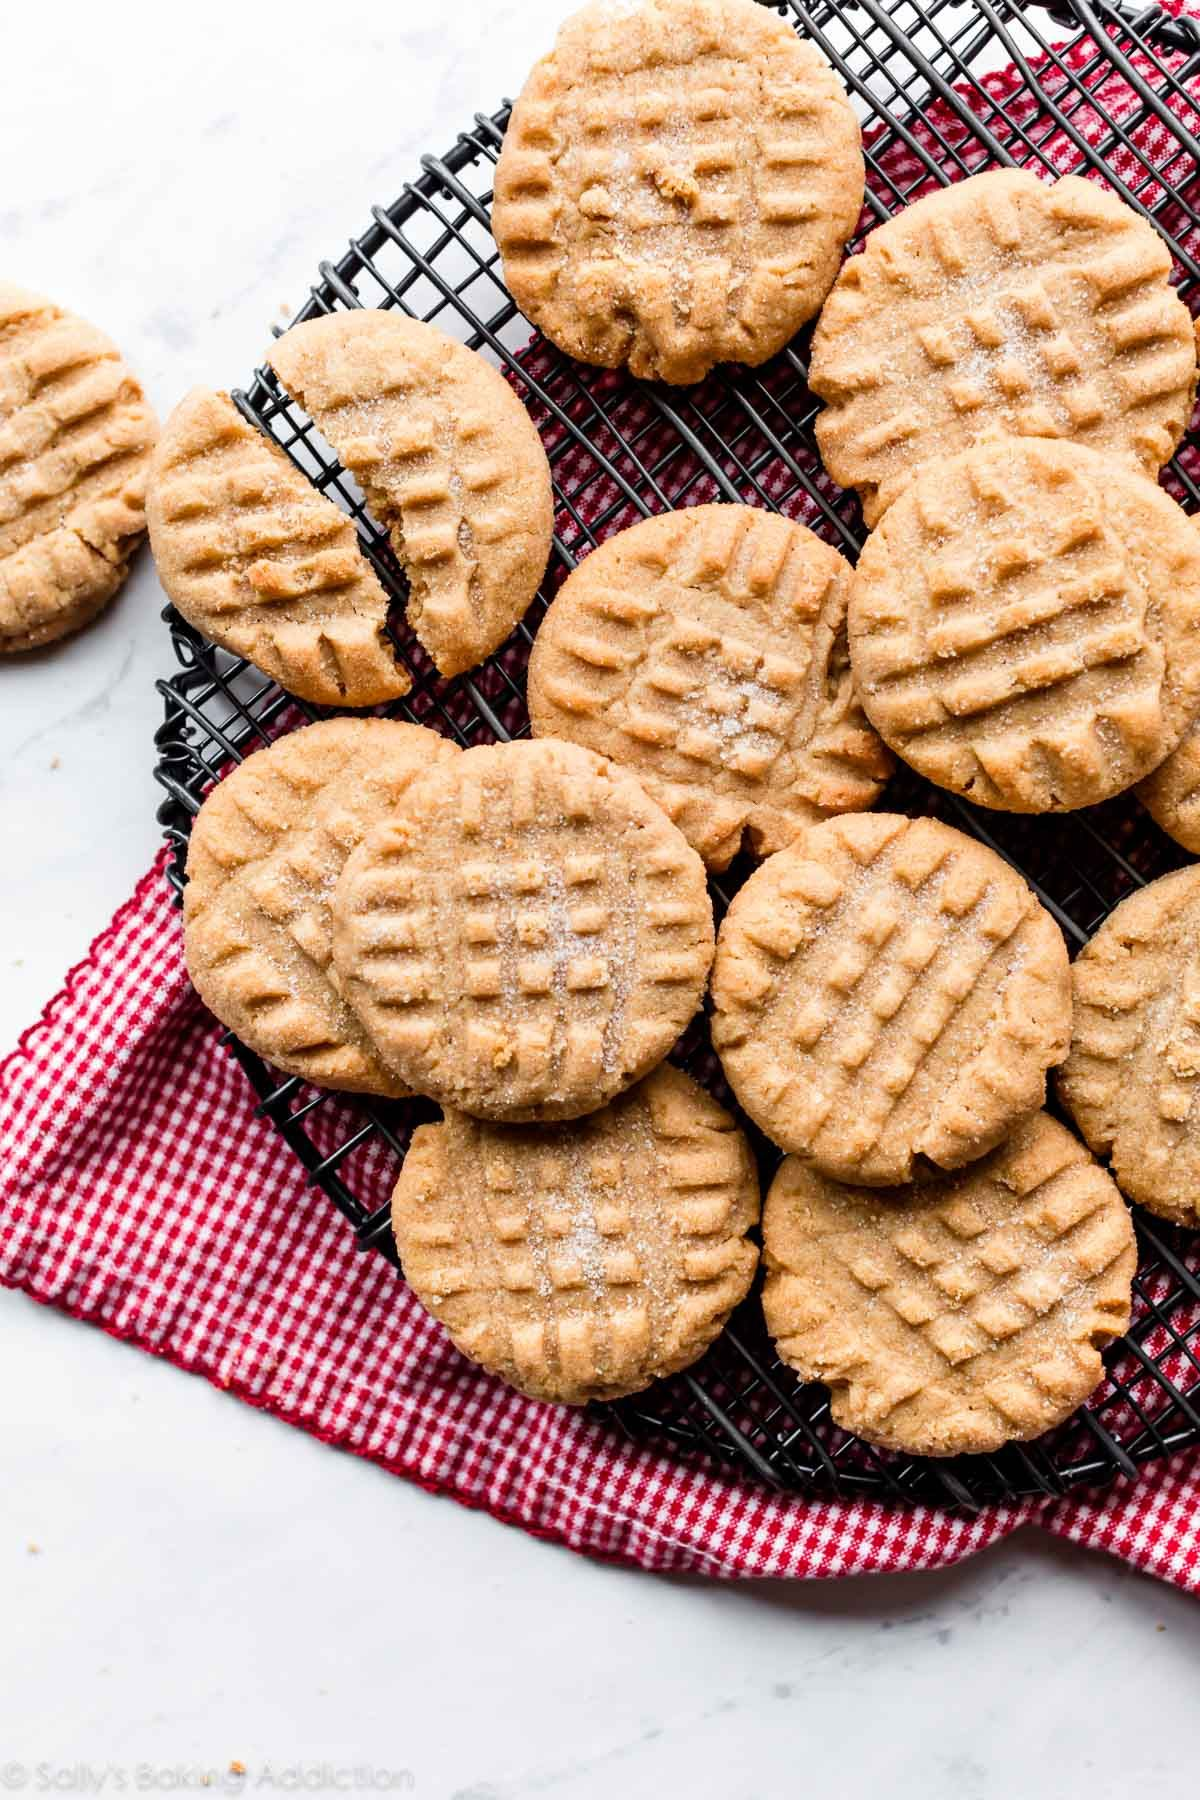 How To Make Soft Baked Mega Peanut Butter Cookies With Extreme